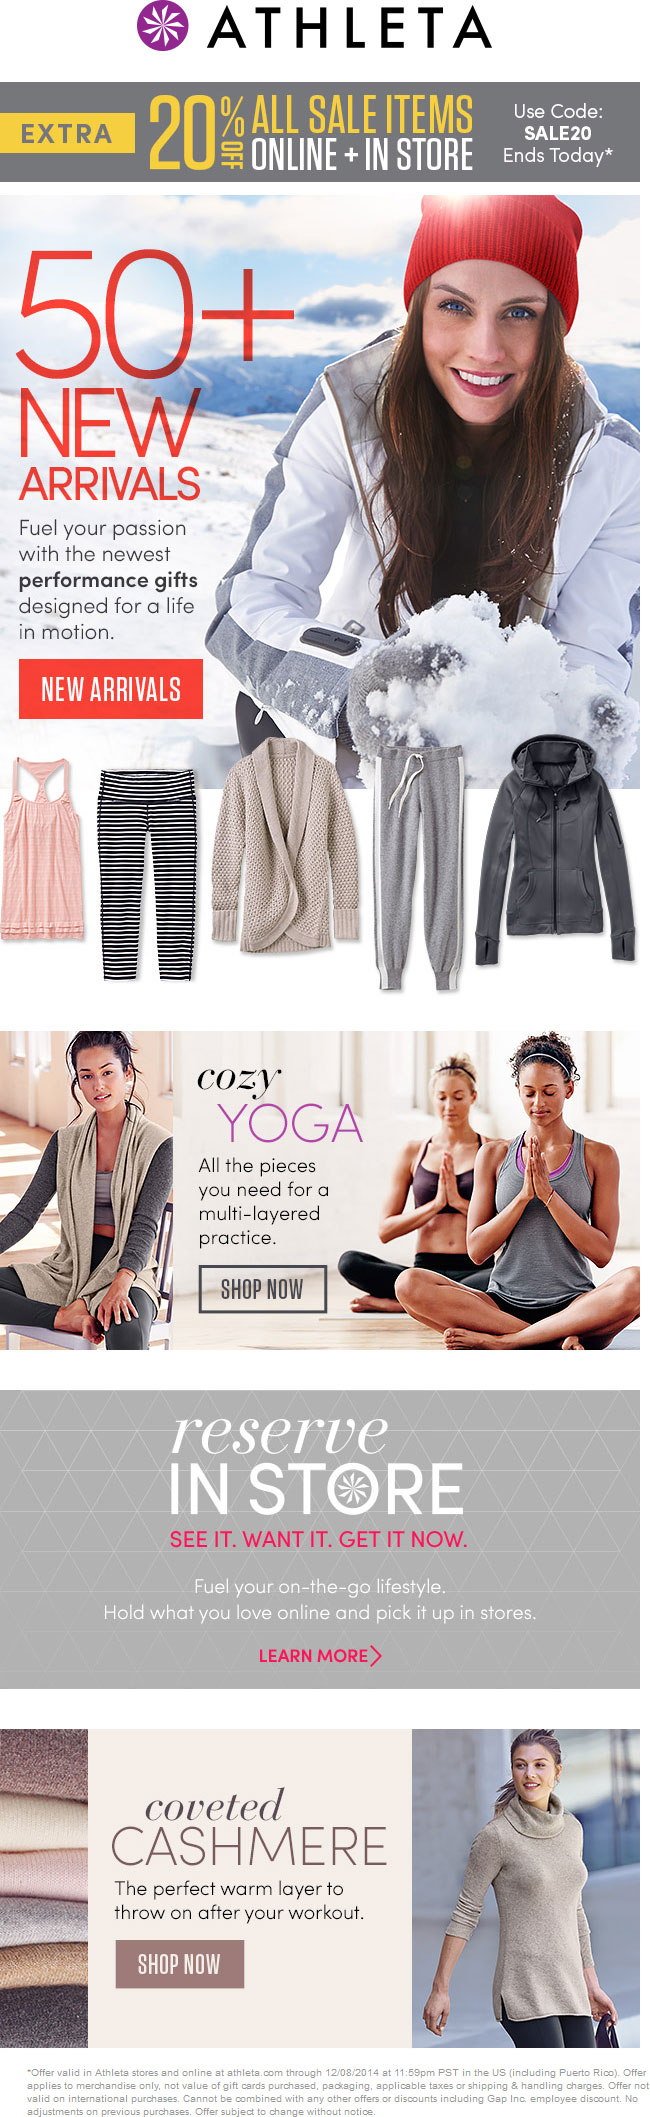 Athleta Coupon February 2019 Extra 20% off sale items today at Athleta, or online via promo code SALE20